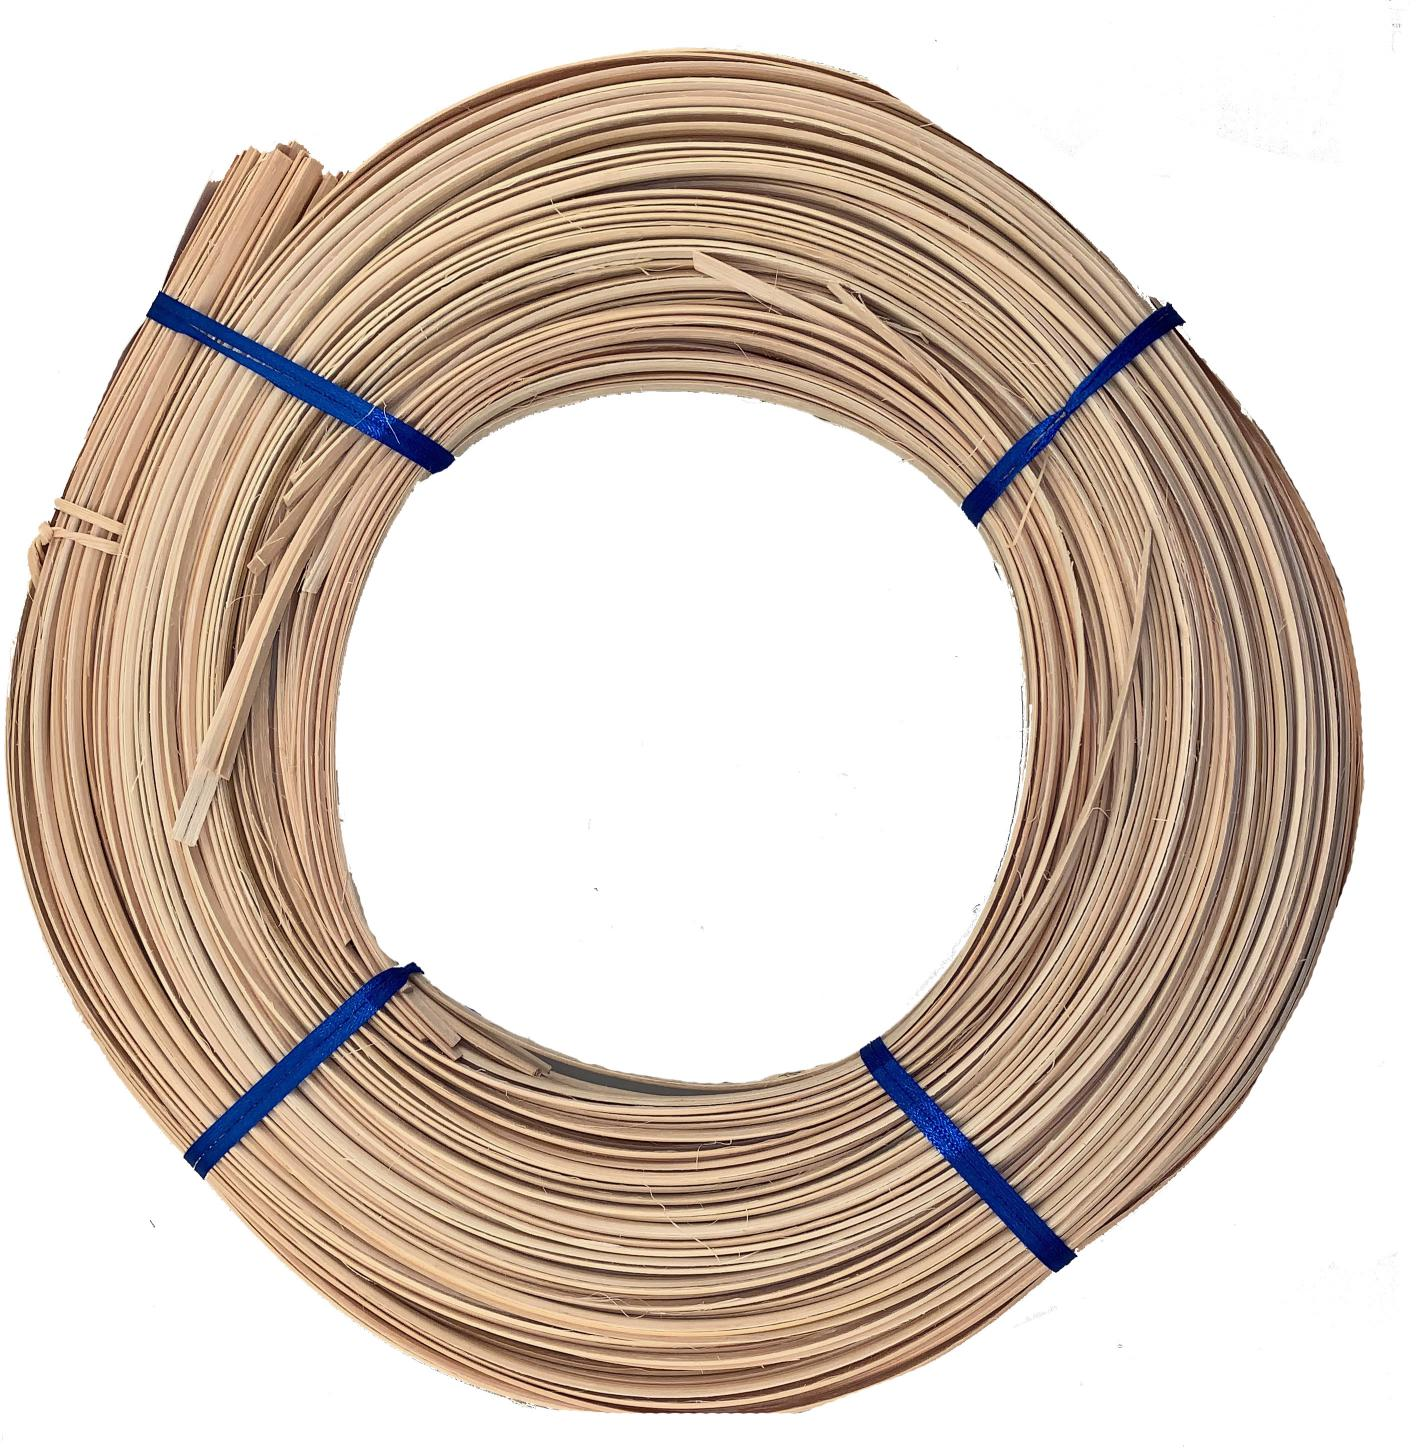 3/16 flat oval reed - 260 ft.